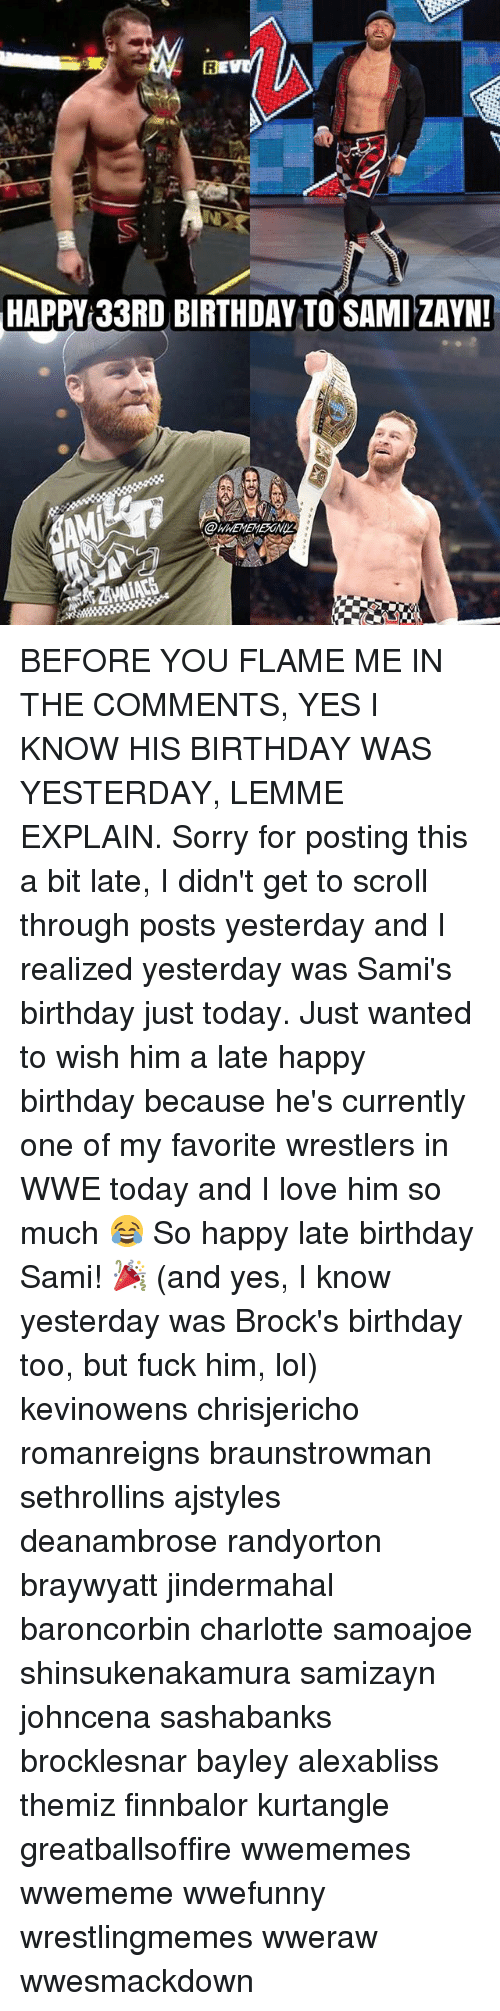 wrestlers: HAPPY 33RD BIRTHDAY TO SAMI ZAYN!  @WWEMEMEEONI BEFORE YOU FLAME ME IN THE COMMENTS, YES I KNOW HIS BIRTHDAY WAS YESTERDAY, LEMME EXPLAIN. Sorry for posting this a bit late, I didn't get to scroll through posts yesterday and I realized yesterday was Sami's birthday just today. Just wanted to wish him a late happy birthday because he's currently one of my favorite wrestlers in WWE today and I love him so much 😂 So happy late birthday Sami! 🎉 (and yes, I know yesterday was Brock's birthday too, but fuck him, lol) kevinowens chrisjericho romanreigns braunstrowman sethrollins ajstyles deanambrose randyorton braywyatt jindermahal baroncorbin charlotte samoajoe shinsukenakamura samizayn johncena sashabanks brocklesnar bayley alexabliss themiz finnbalor kurtangle greatballsoffire wwememes wwememe wwefunny wrestlingmemes wweraw wwesmackdown